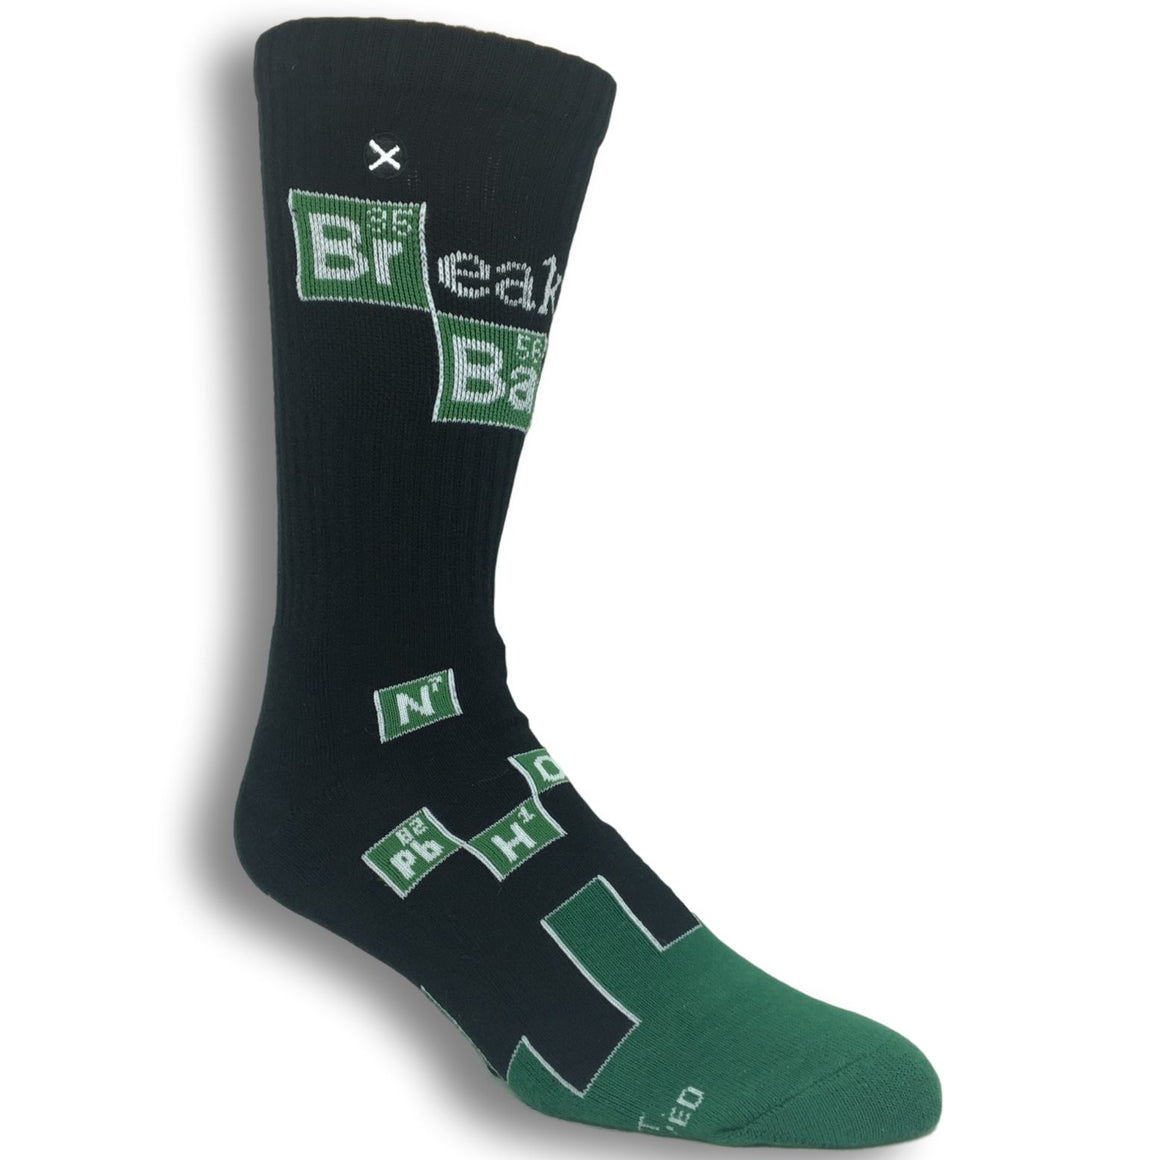 Breaking Bad Chemistry Athletic Socks by Odd Sox - The Sock Spot